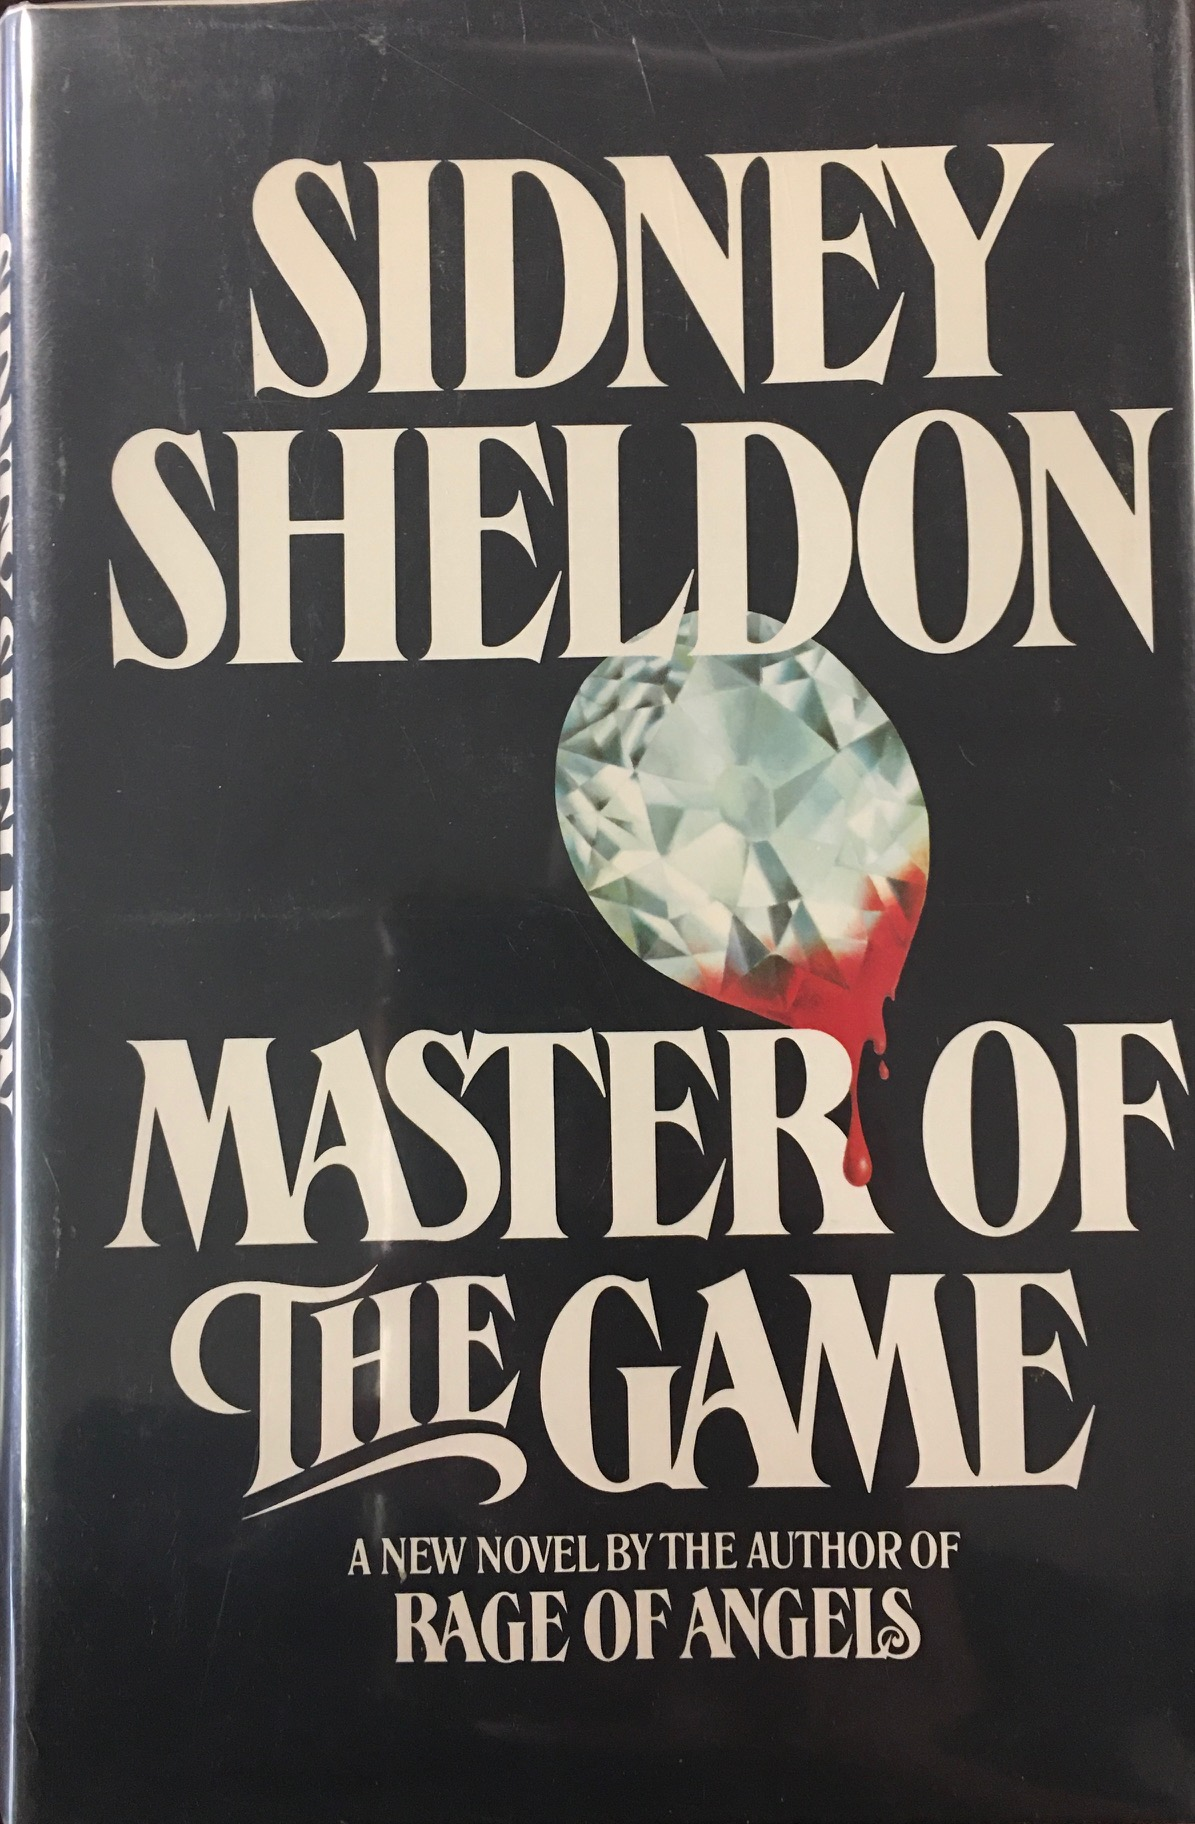 Image for Master of the Game 1st edition by Sheldon, Sidney published by William Morrow & Co Hardcover